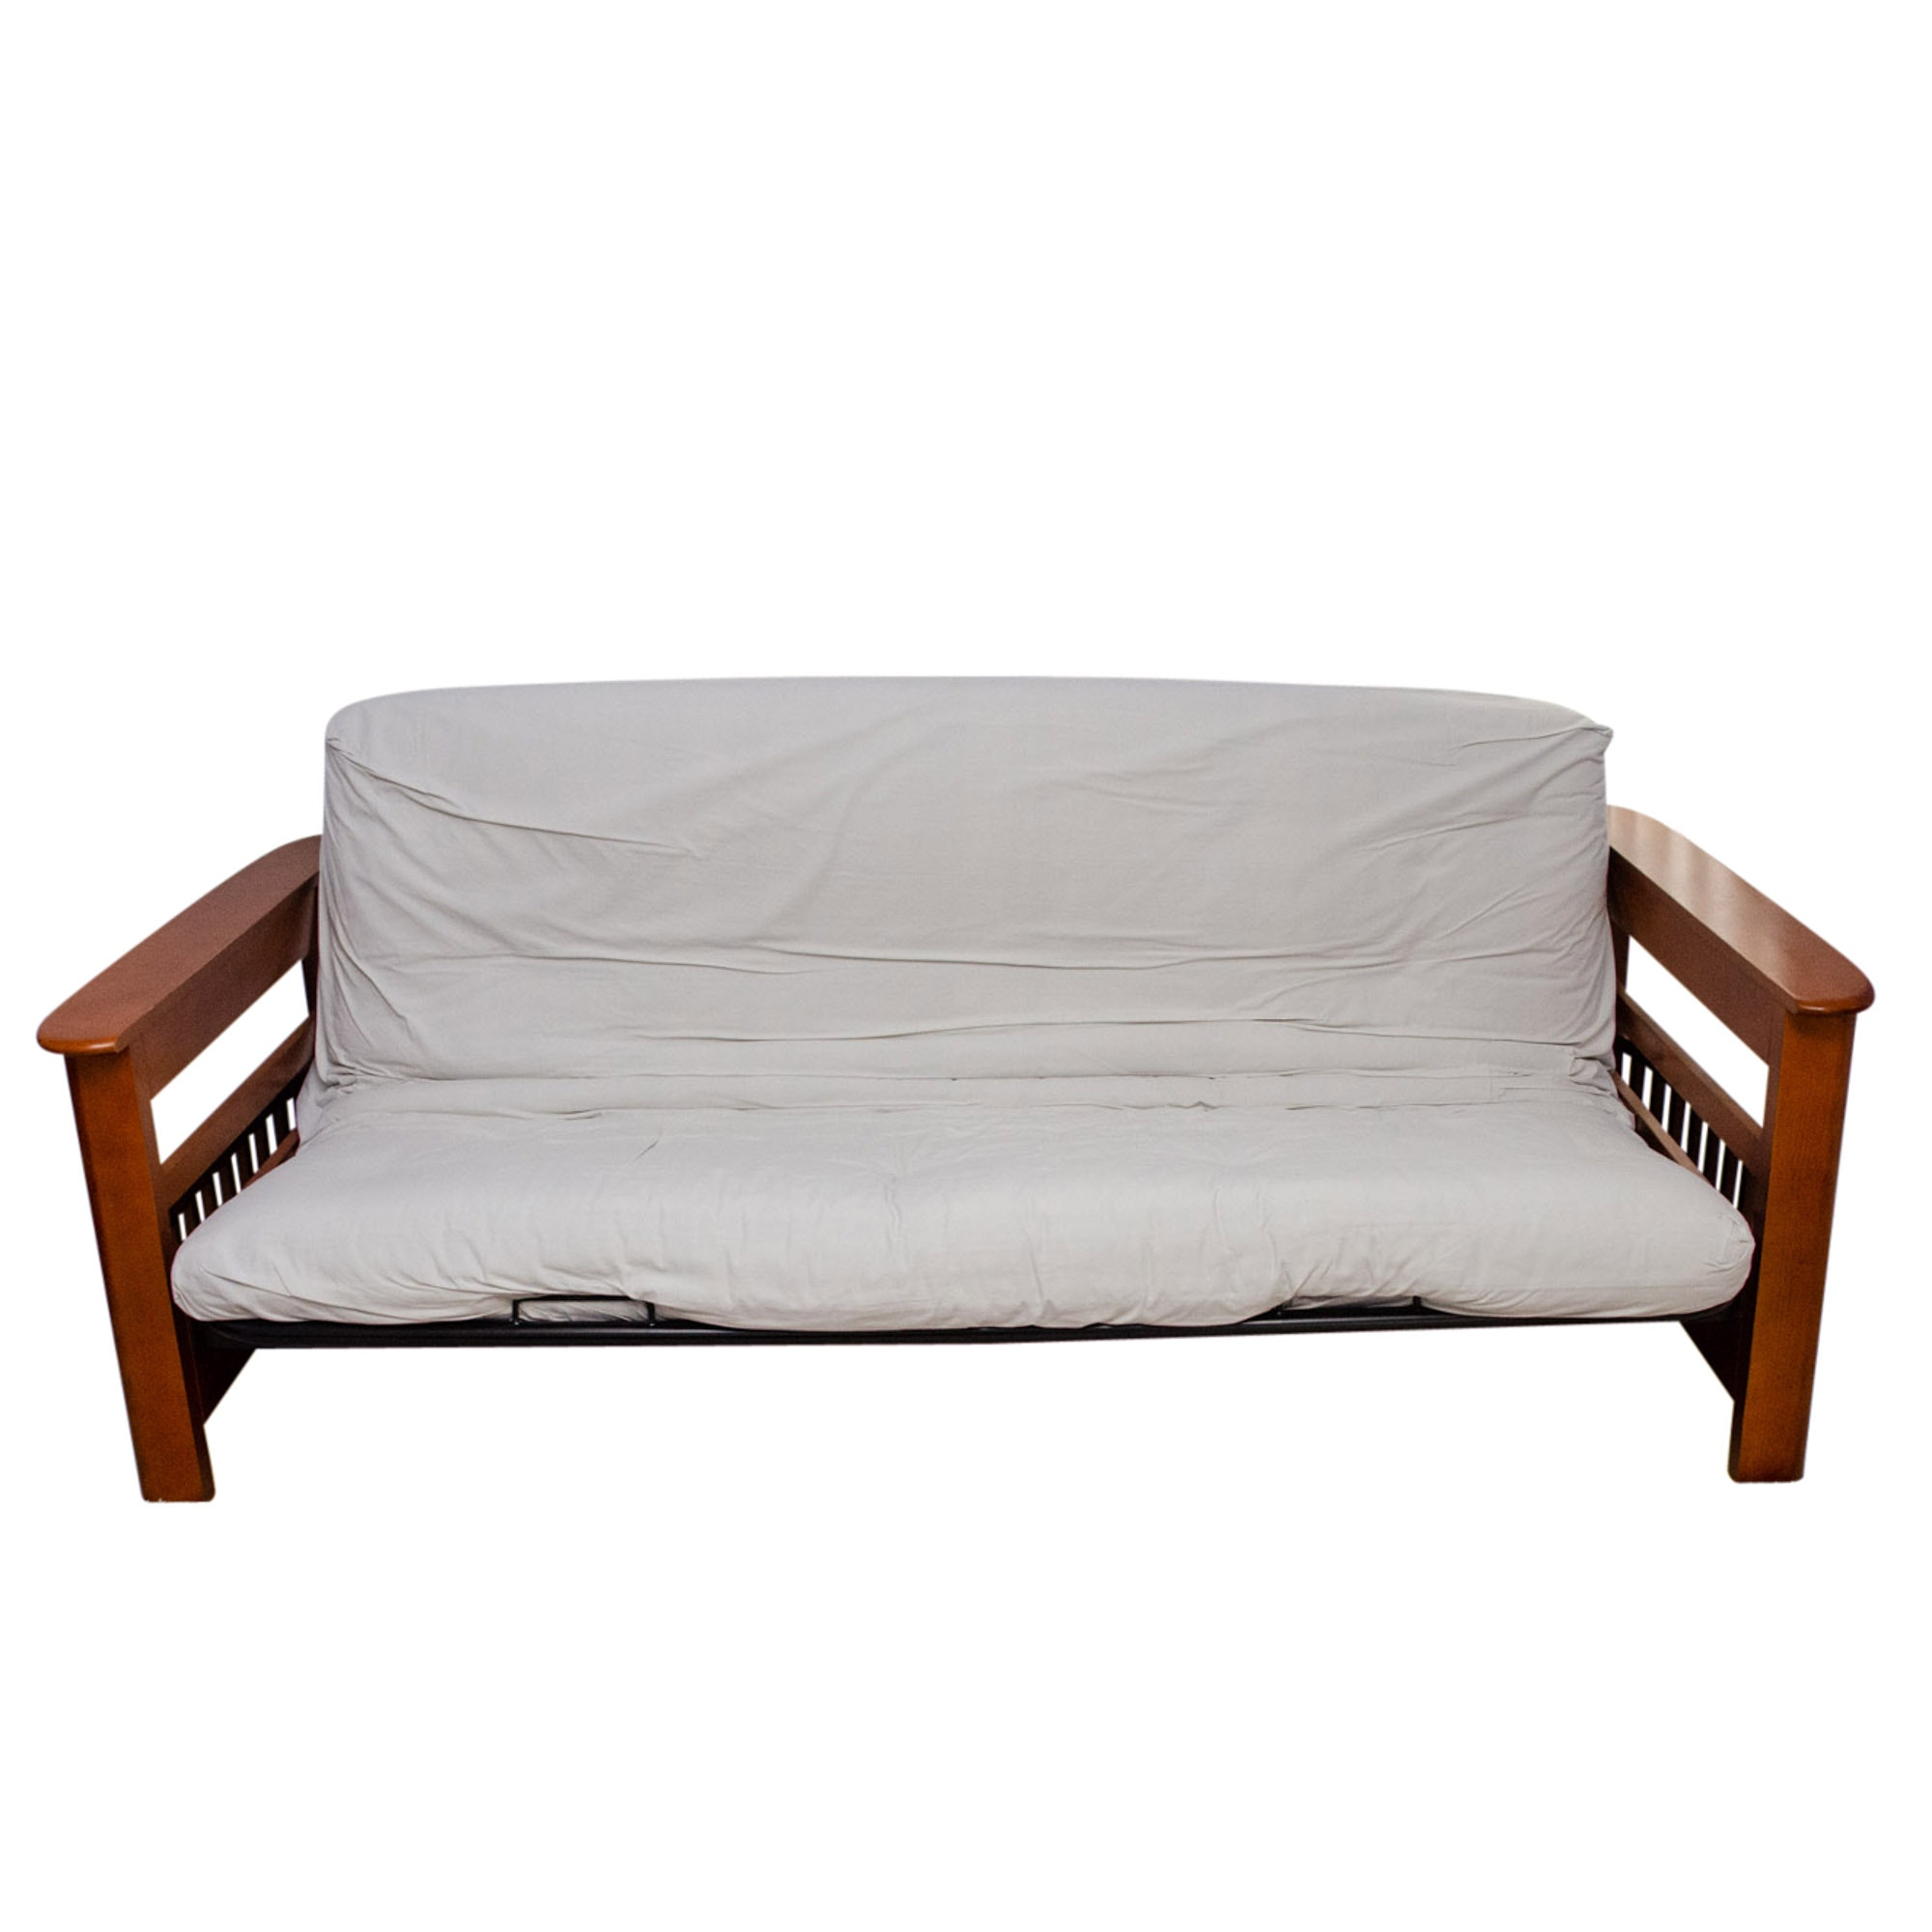 Contemporary Wooden Futon Sofa